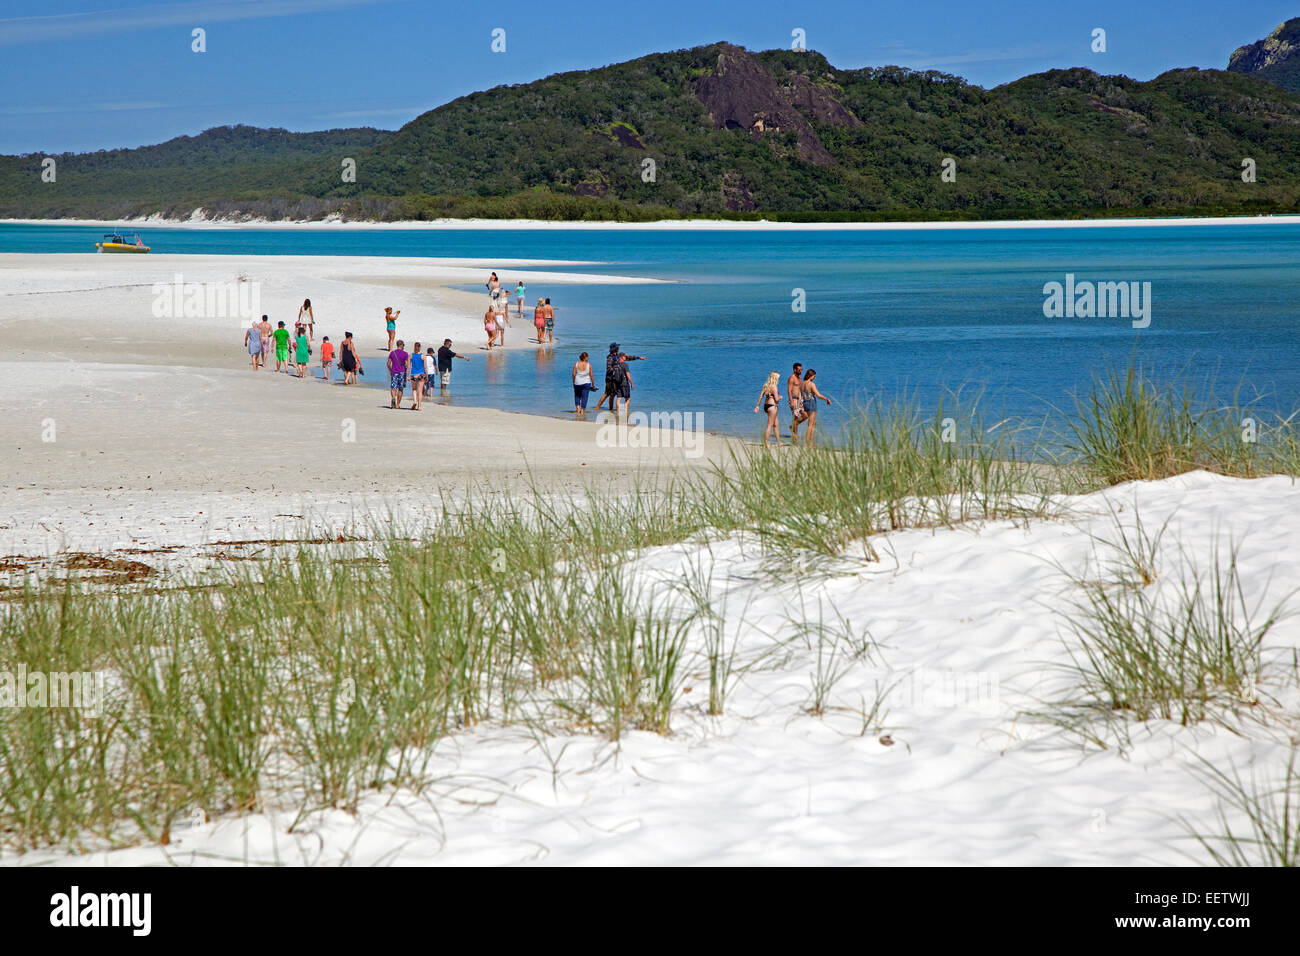 Tourists visiting the shoreline of Whitehaven Beach on Whitsunday Island in the Coral Sea, Queensland, Australia - Stock Image